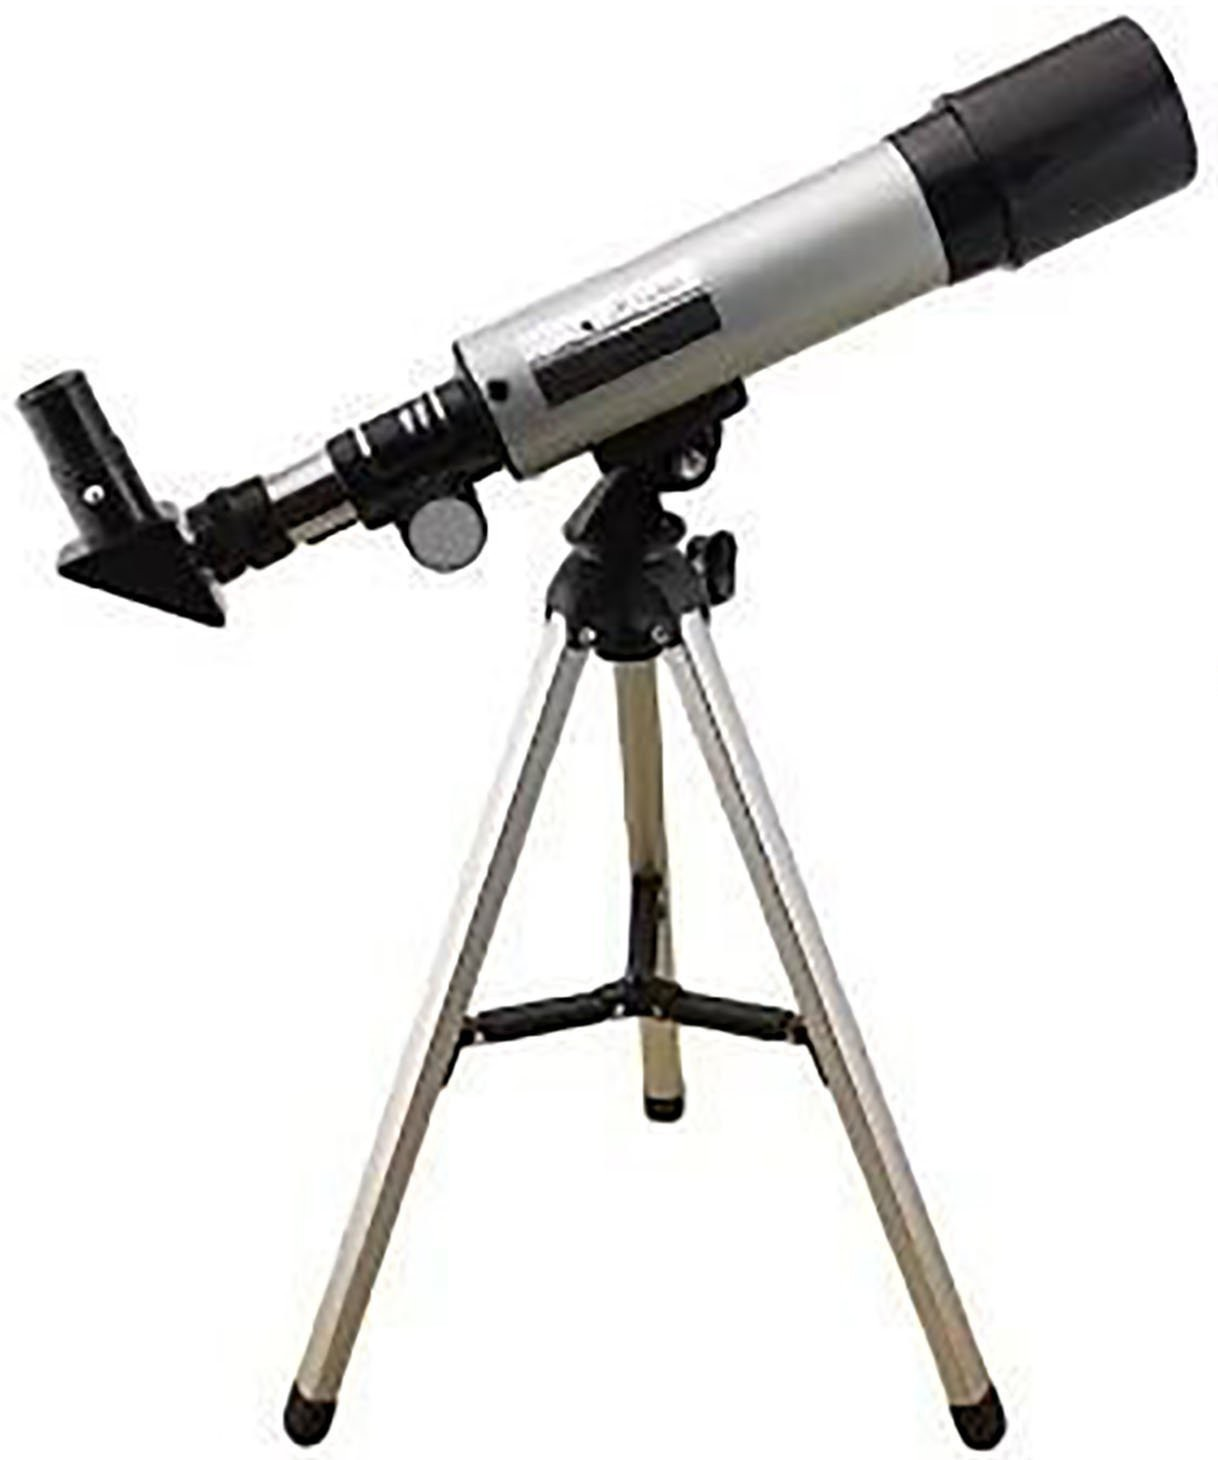 Sukot Land & Sky Astronomical Telescope - Optical Glass & Metal Tube Refractor Telescope (90X Power) With Free TRIPOD & 2 EYEPIECES Refracting Telescope(Manual Tracking)